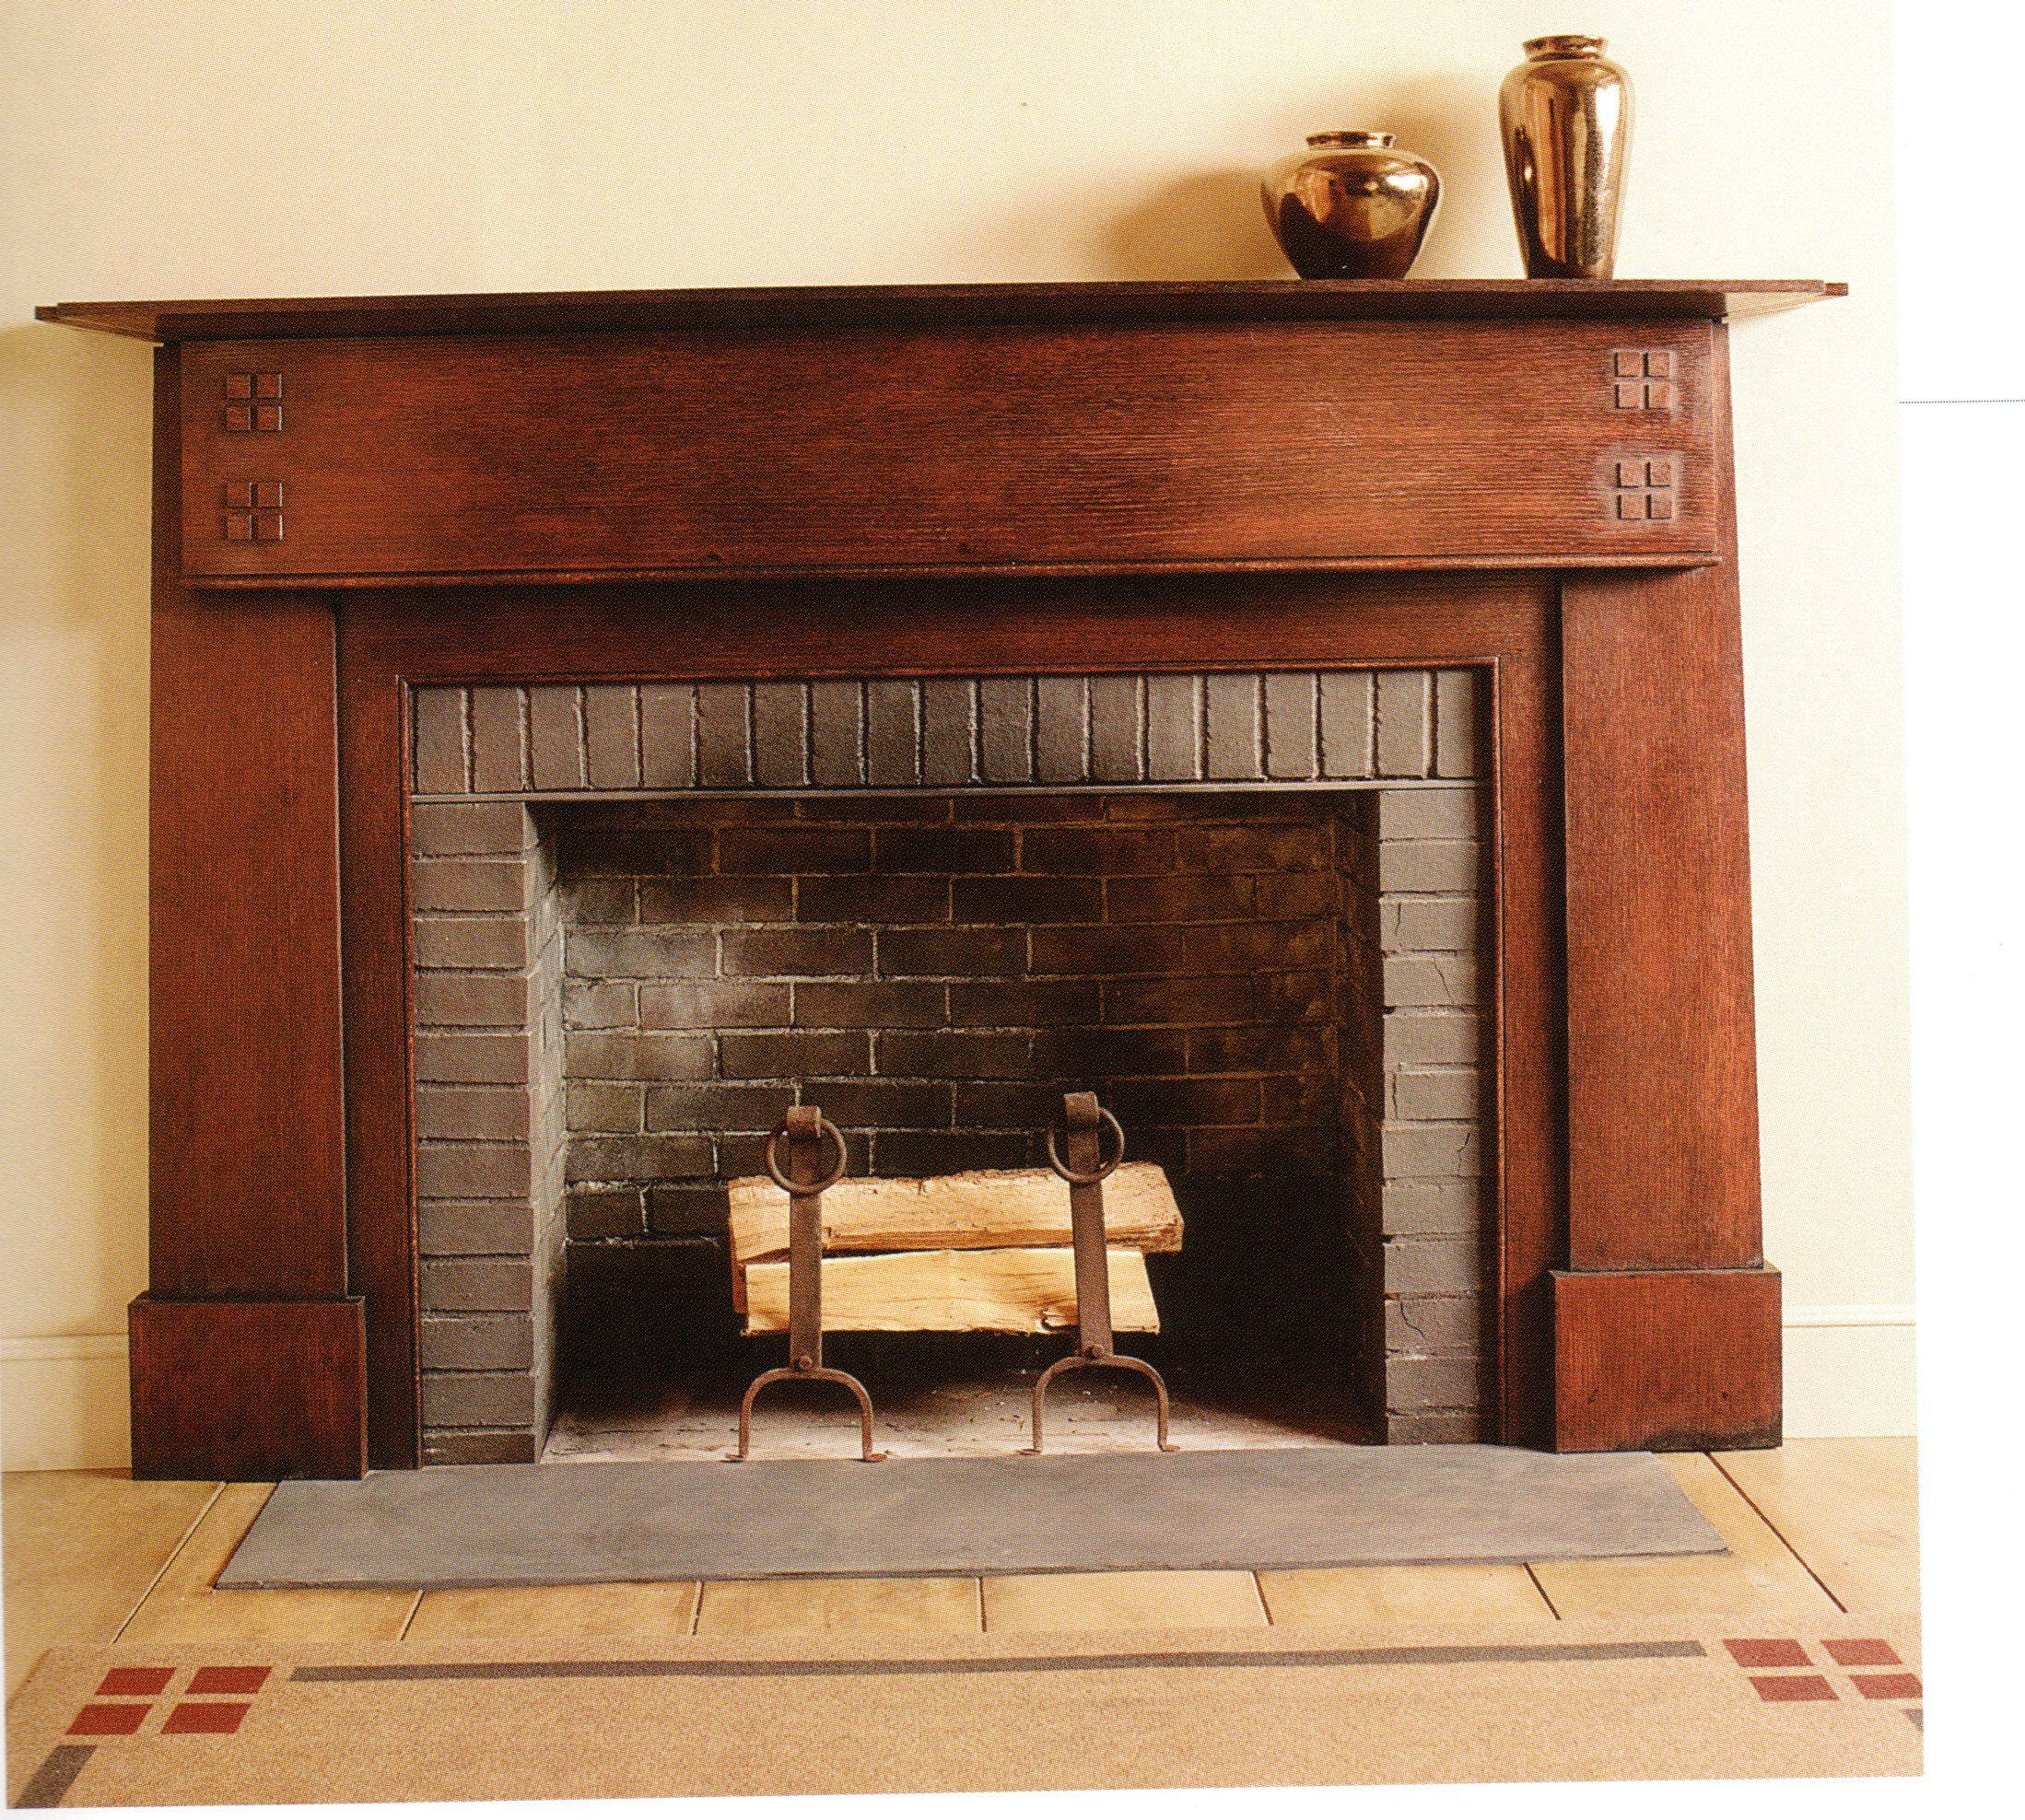 Bungalow Fireplace Mantel Custom Craftsman Style Mantel Your Mantel Could Look